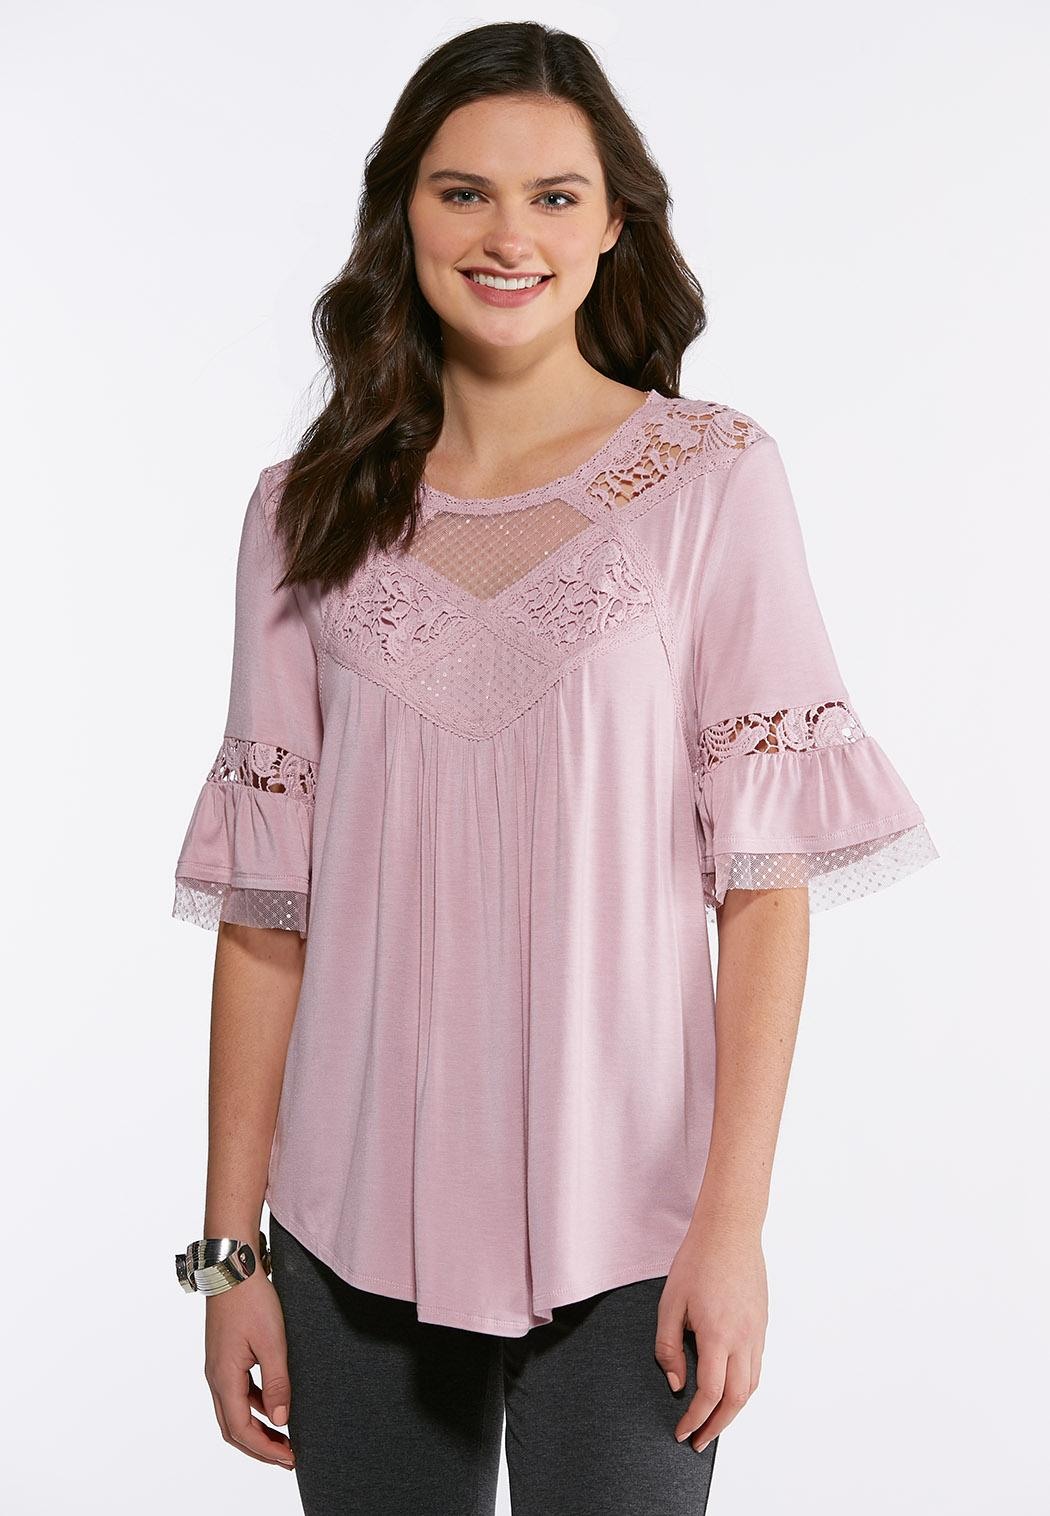 Plus Size Mesh Lace Poet Top Tees Knit Tops Cato Fashions